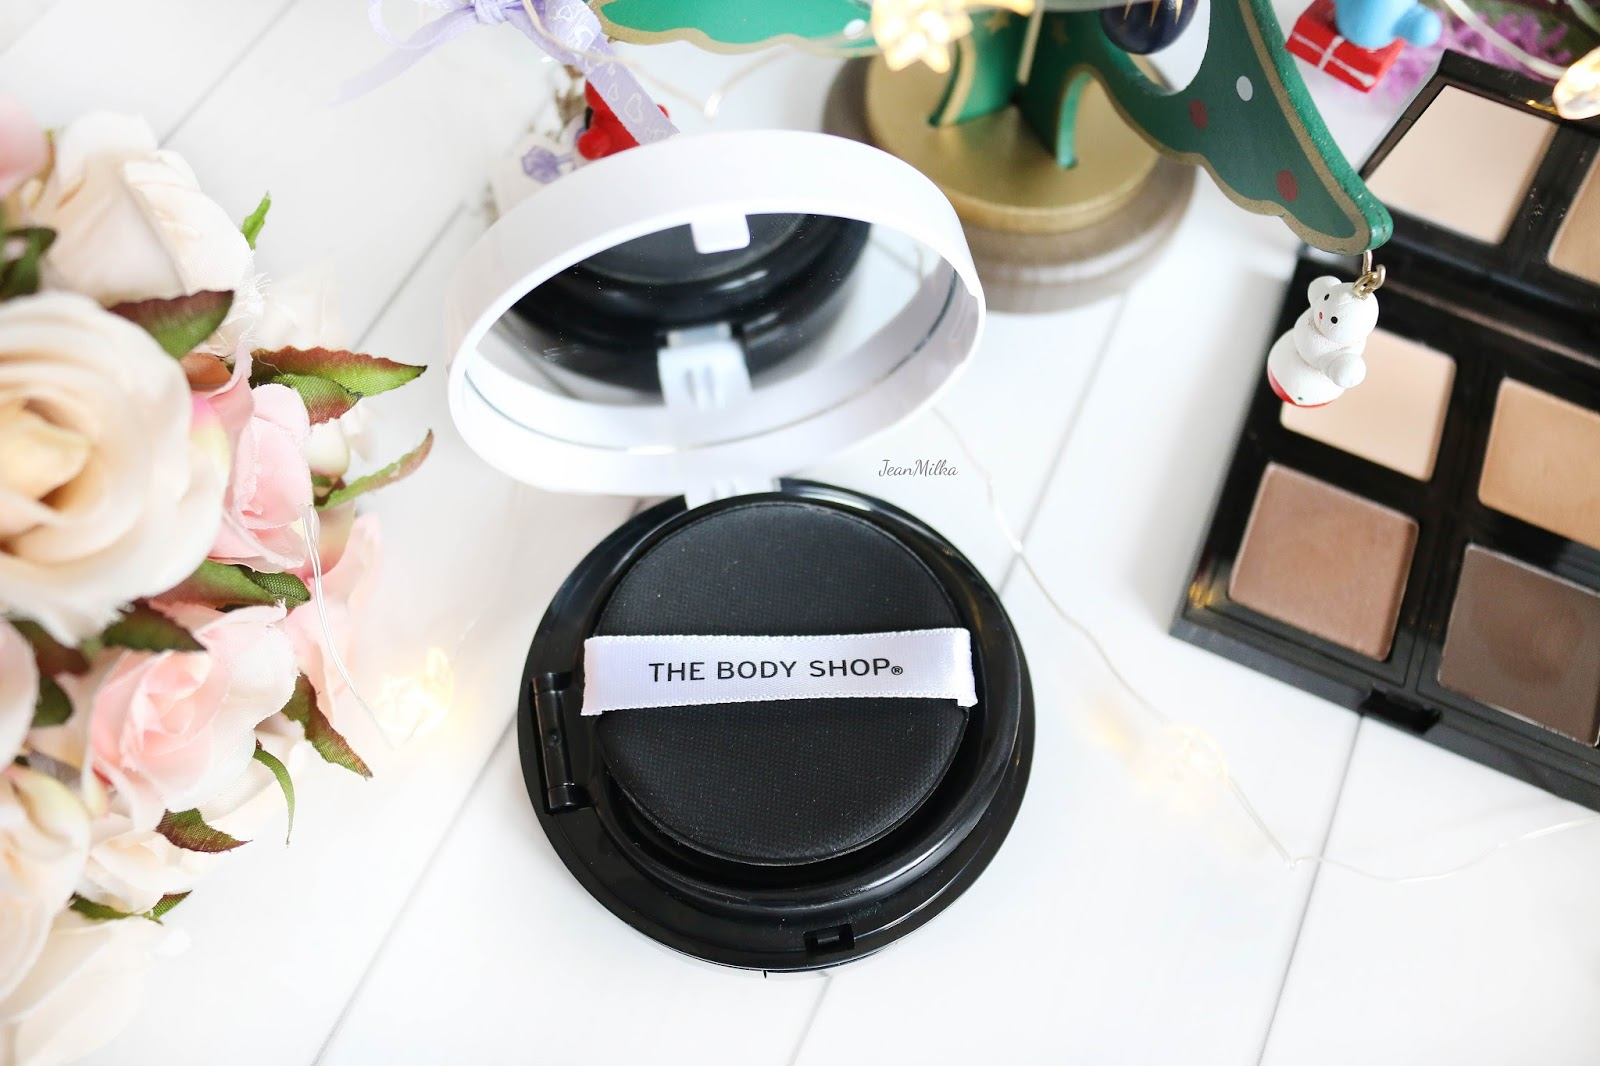 the body shop, body shop, body shop indonesia, the body shop indonesia, makeup natal, makeup, the body shop makeup, makeup collection, christmas makeup, the body shop makeup review, cushion, the body shop cushion, fresh nude cushion foundation, cushion foundation